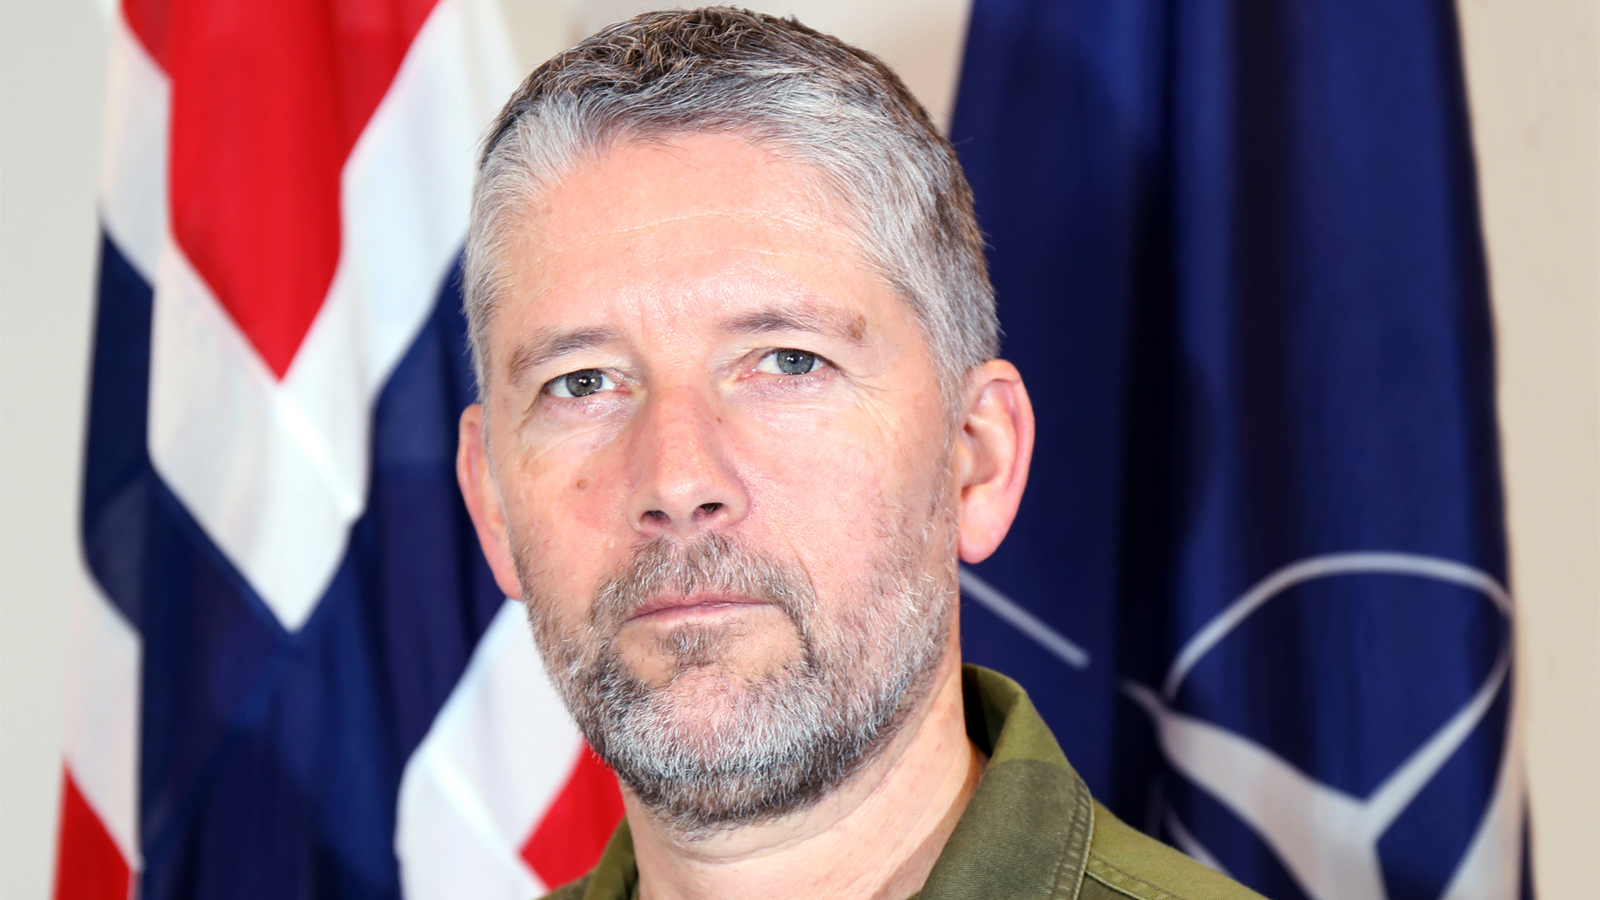 JWC welcomes new Special Advisor to Commander: Brigadier General Kurt Pedersen